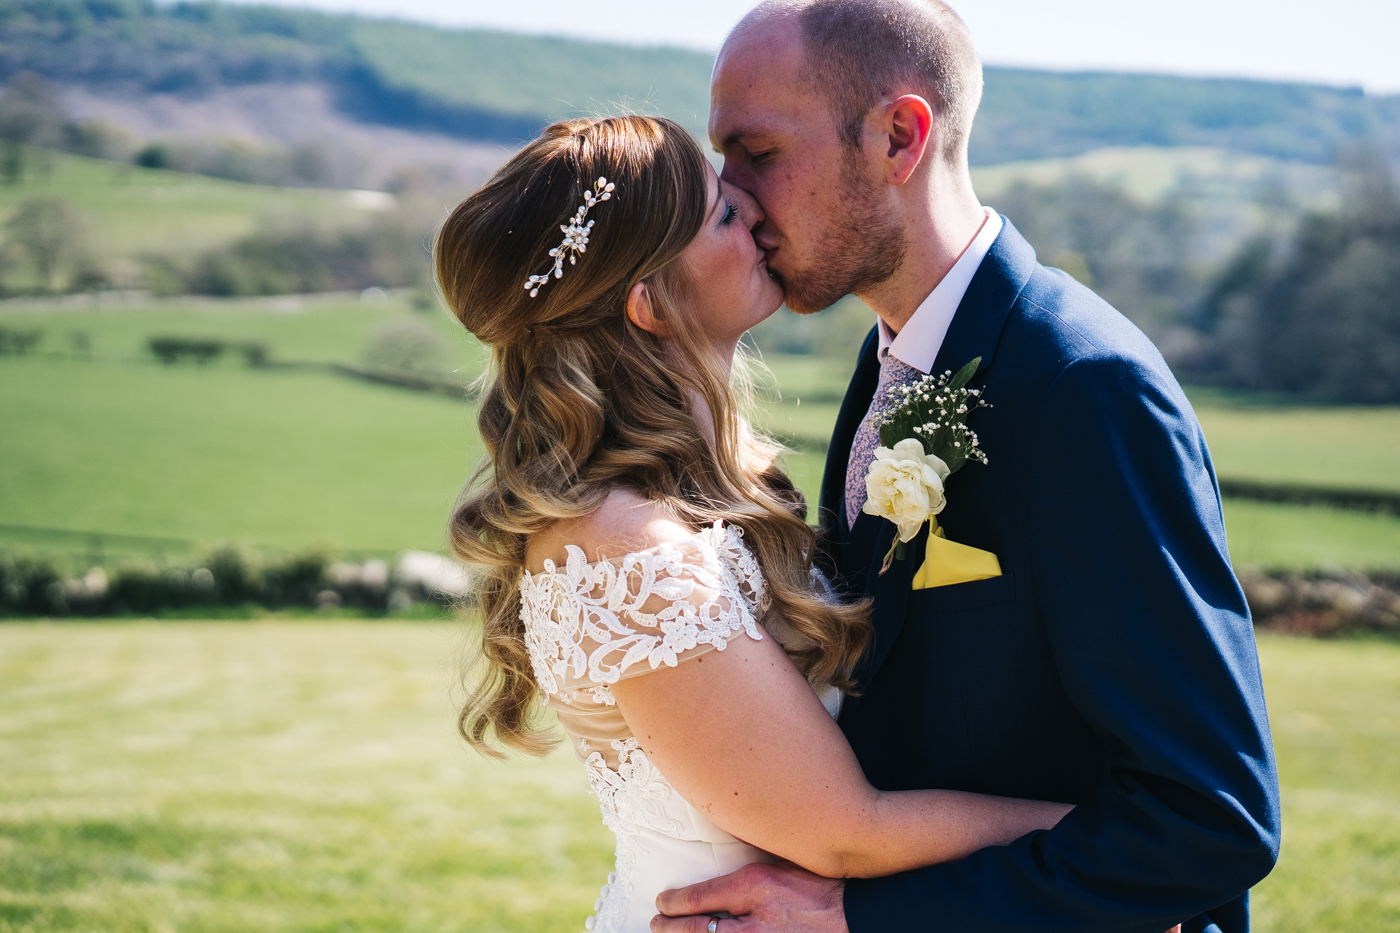 the couple kiss in front of a beautiful yorkshire view. wedding at laskill house north yorkshire helmsley wedding photographer north east teesside